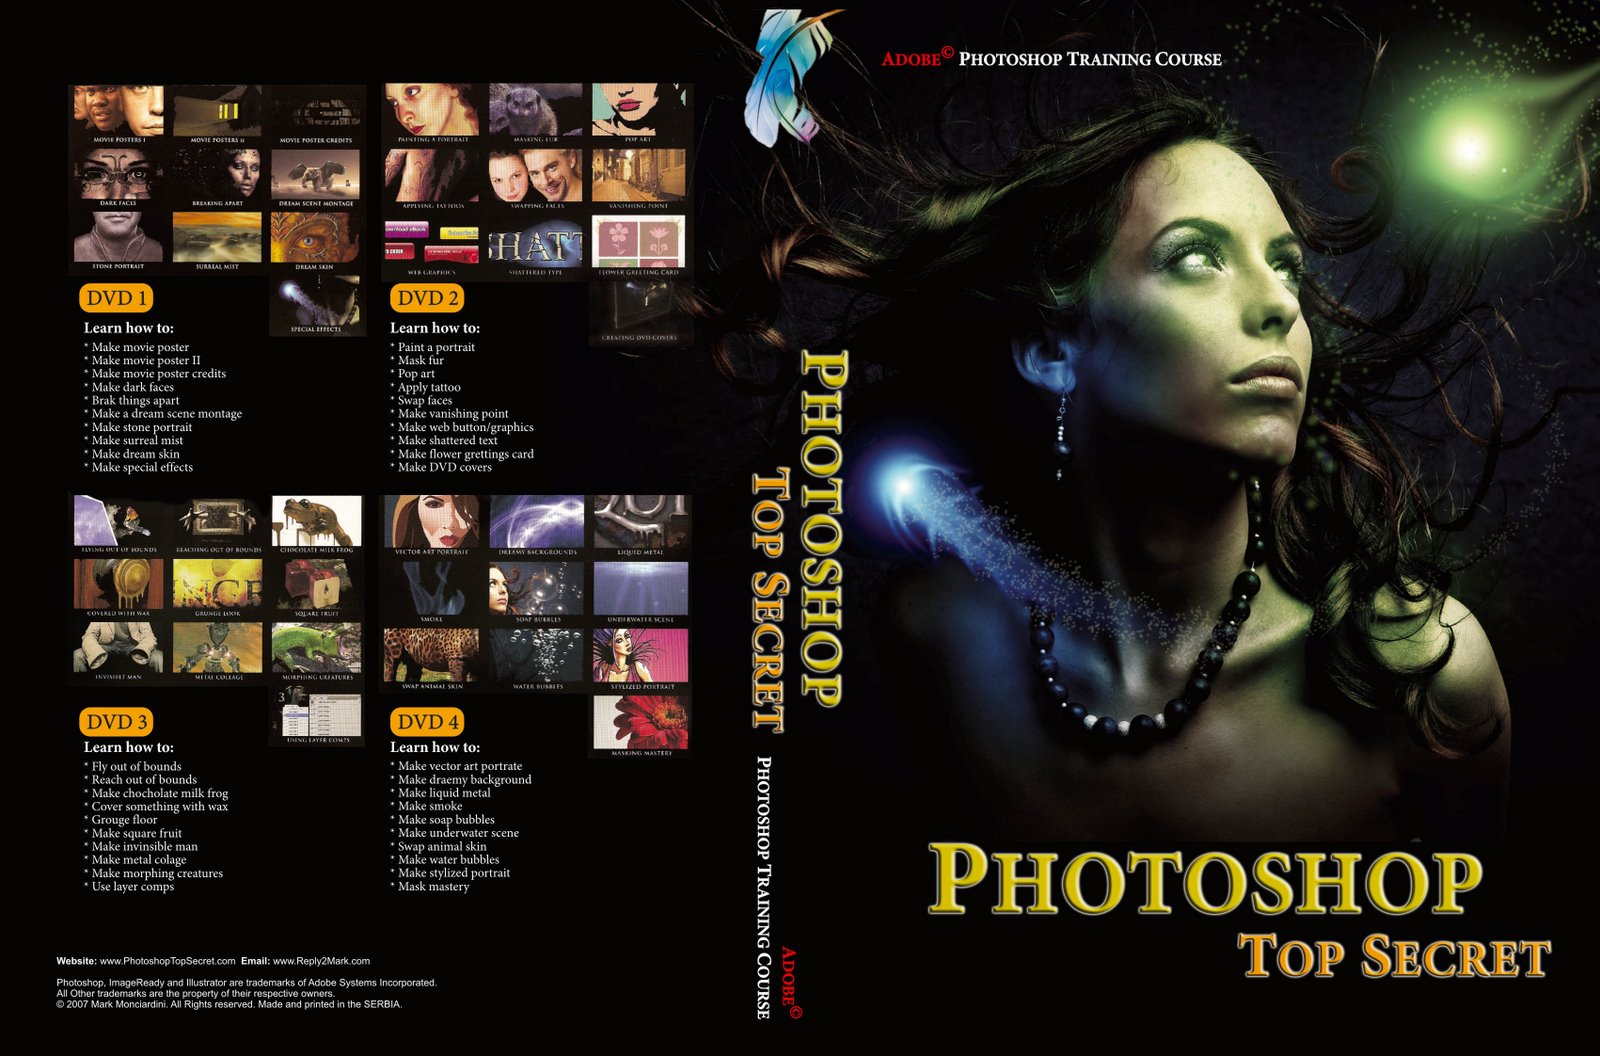 Photoshop top secret dvd 5 download pc